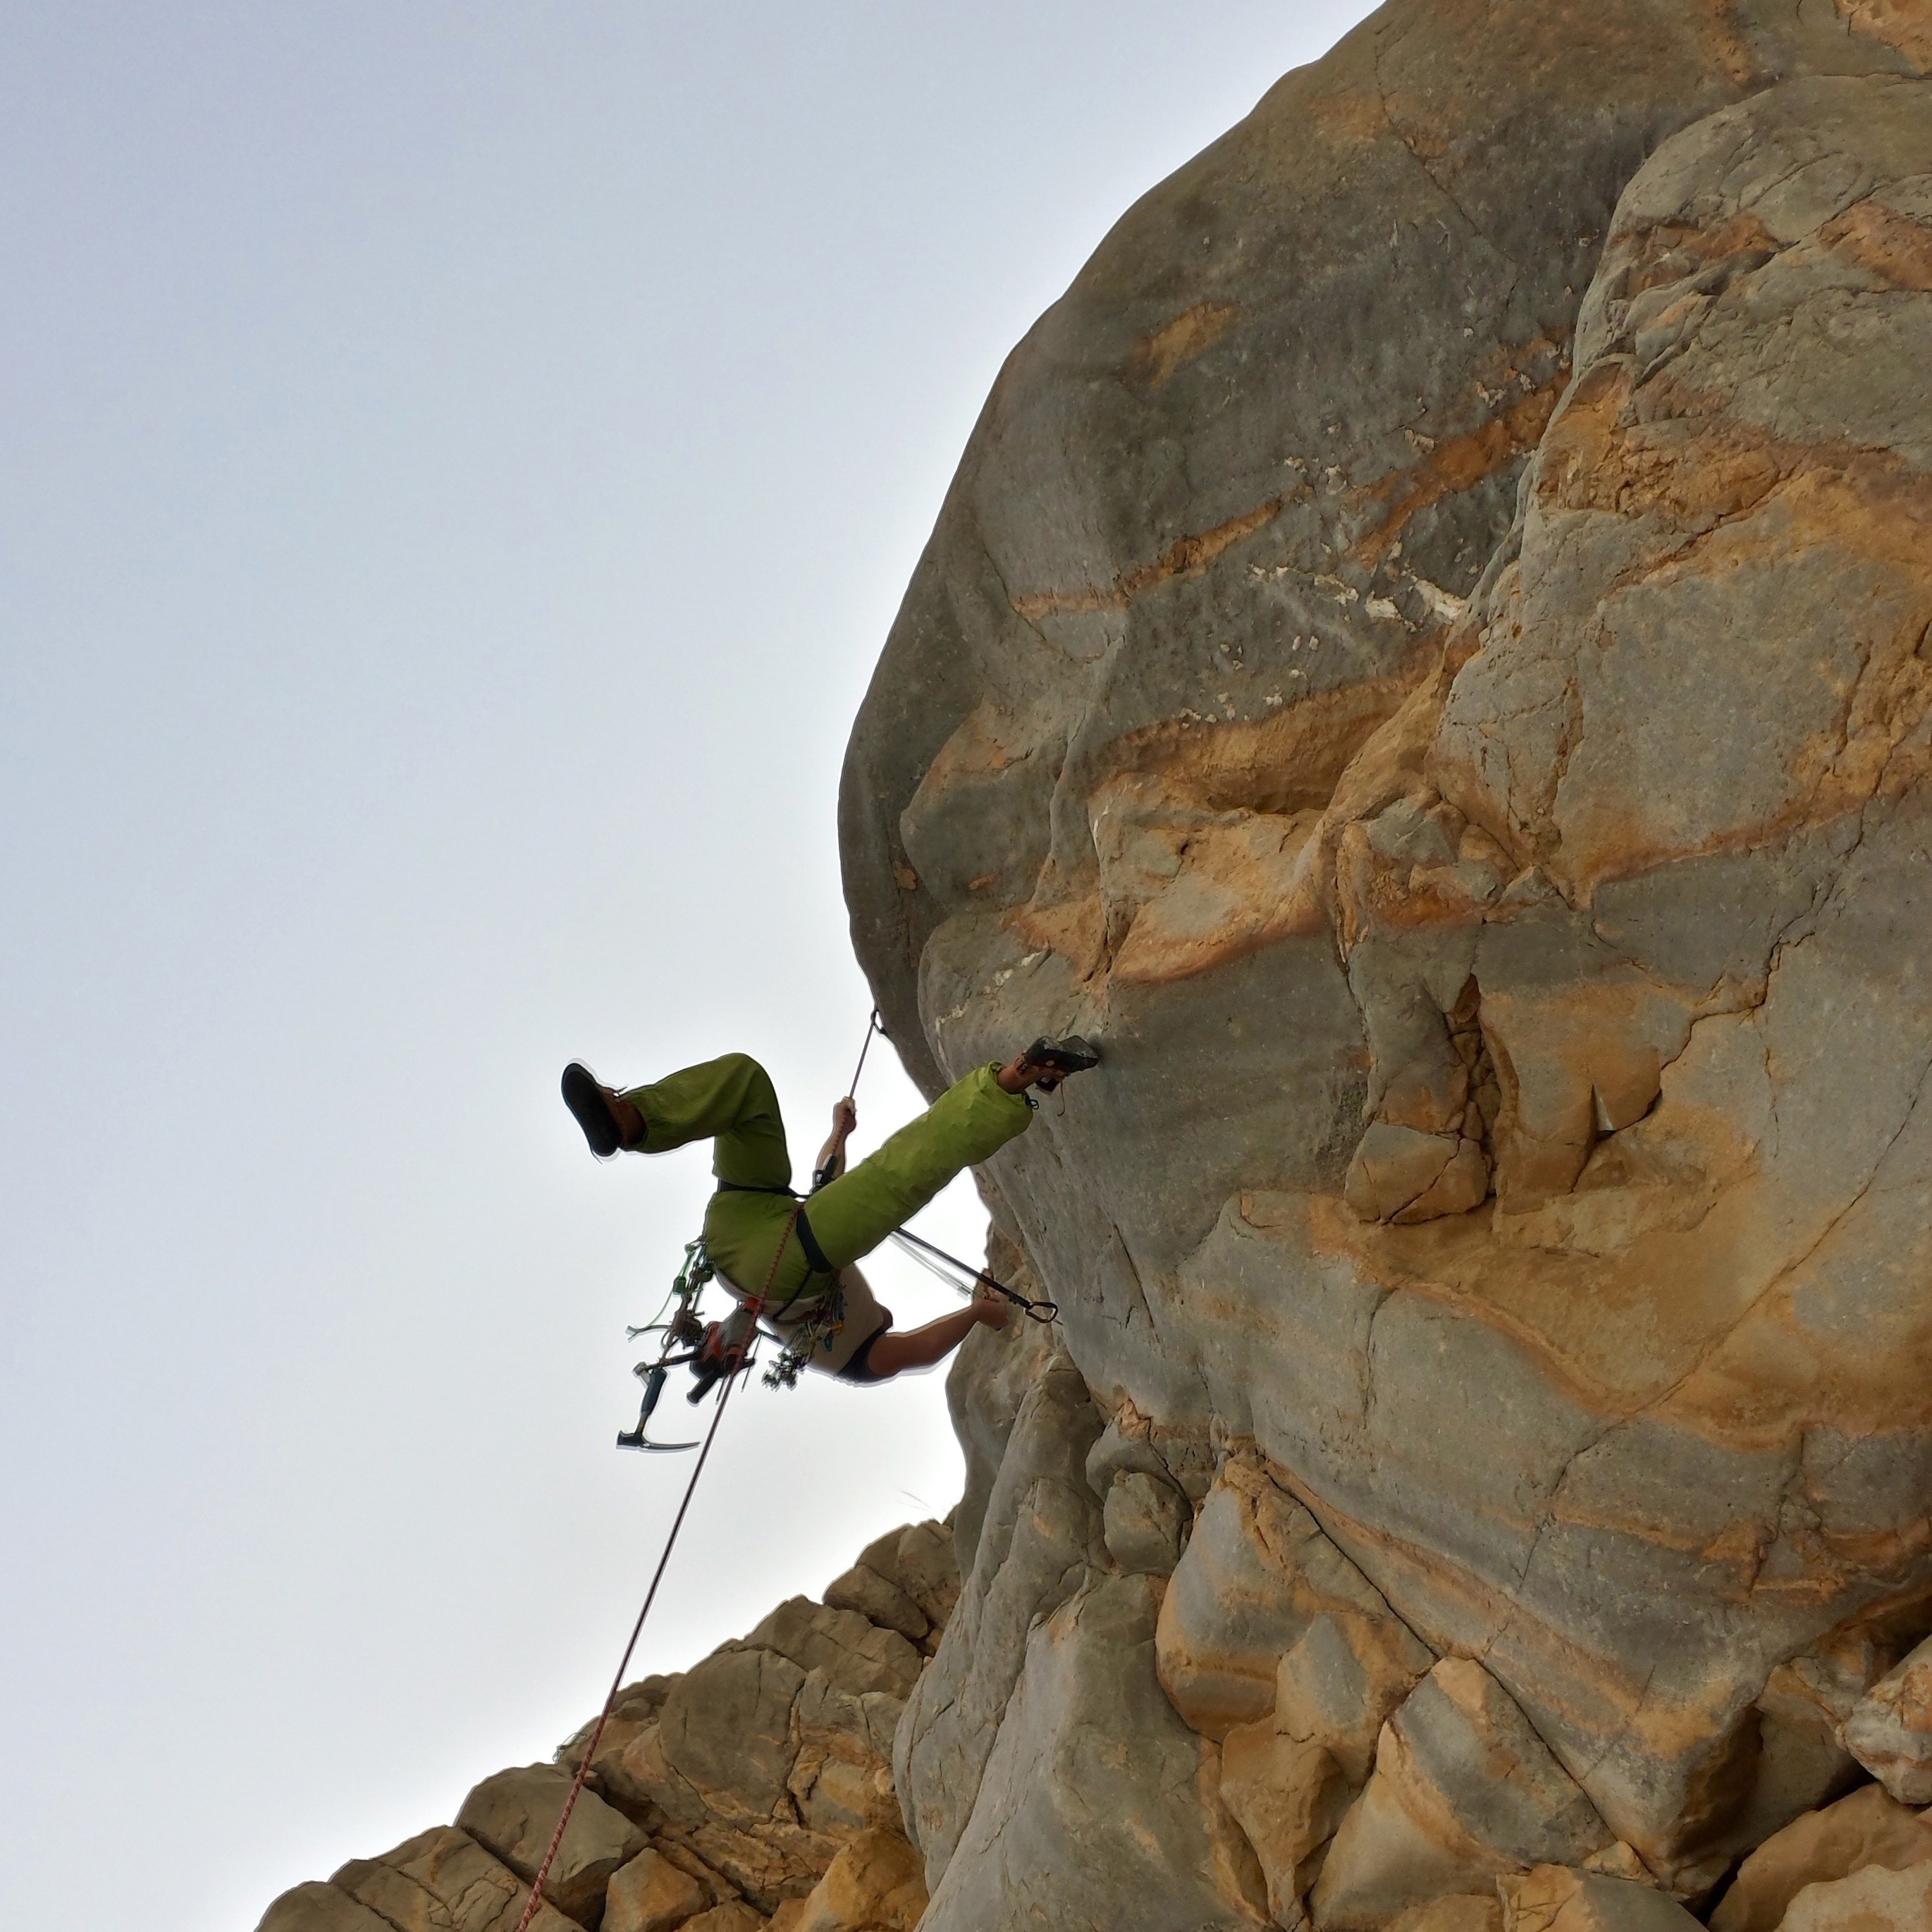 Climbing in Oman: Sand and rock anchors